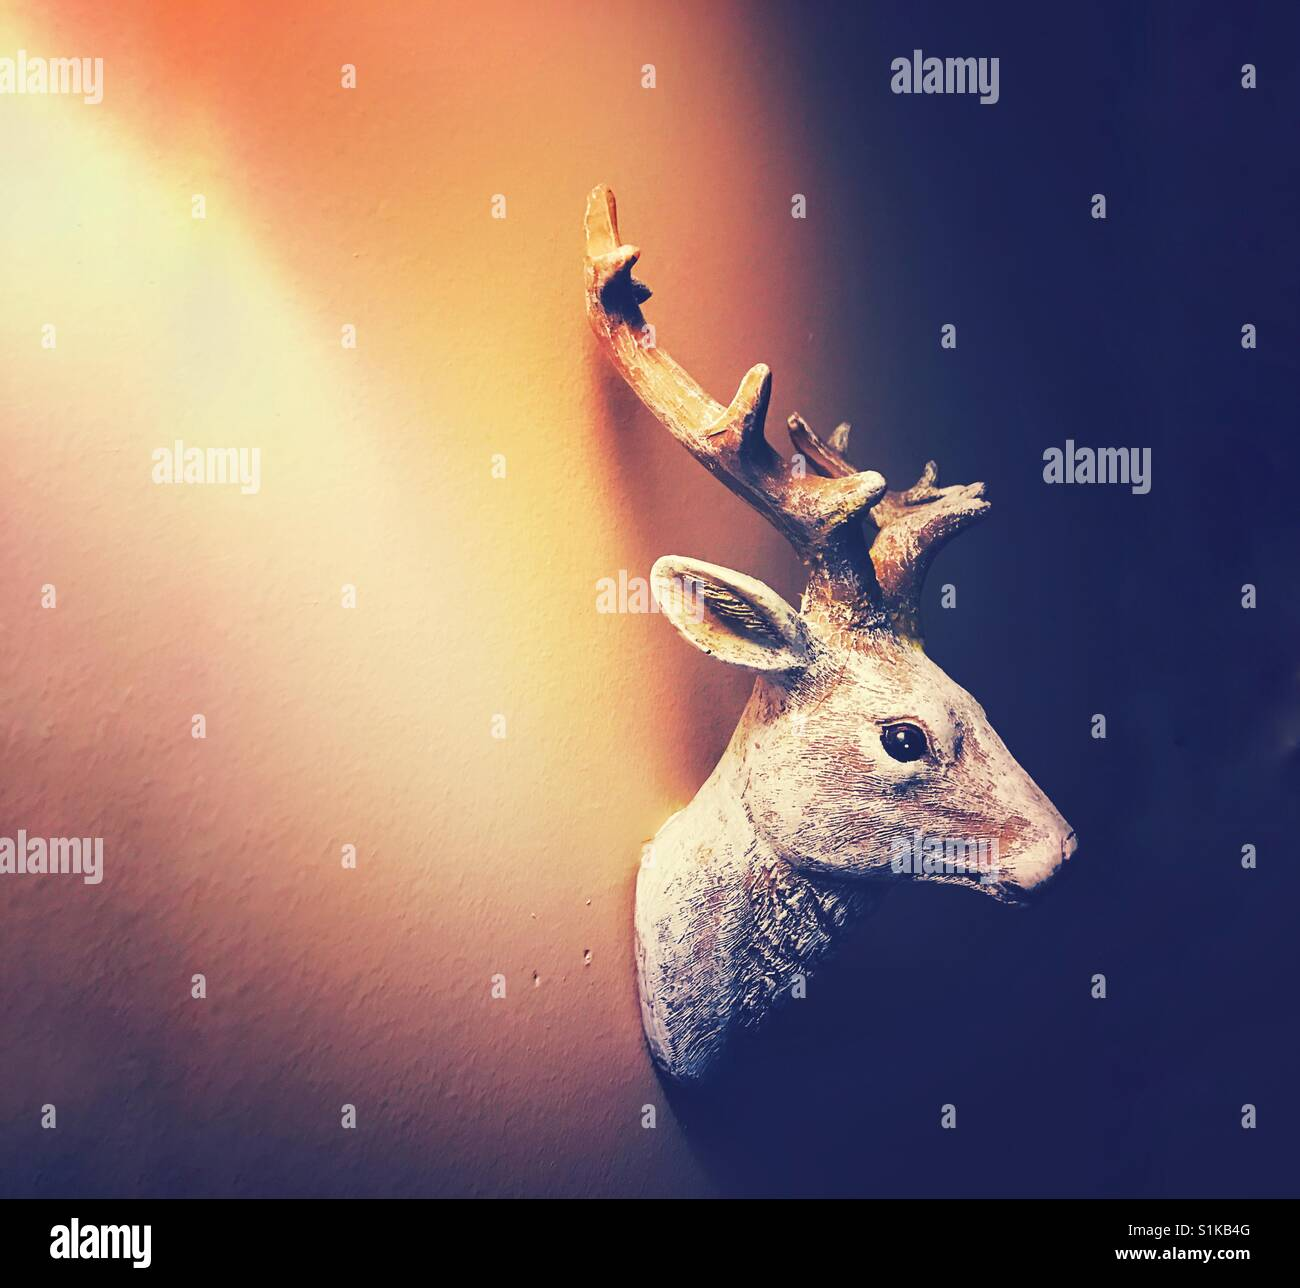 Deer head on the wall Stock Photo, Royalty Free Image: 310827120 - Alamy